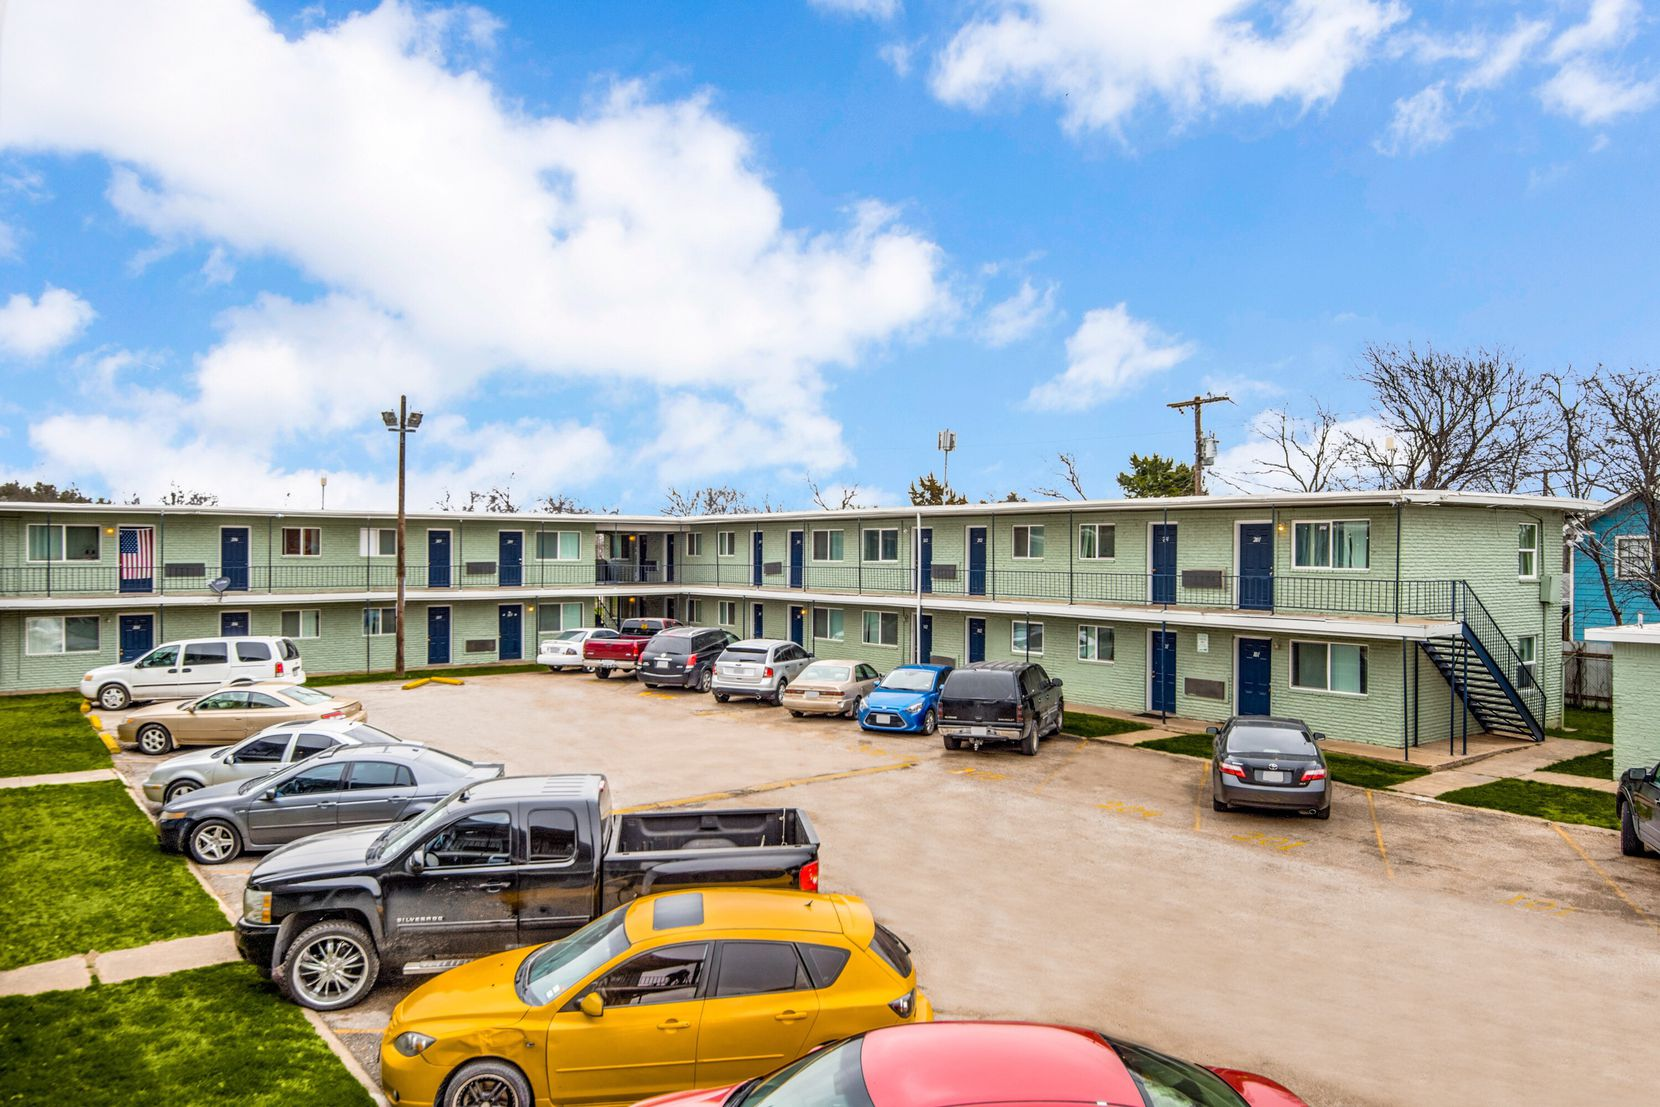 An investor has purchased the Chiquita apartments in Cockrell Hill.